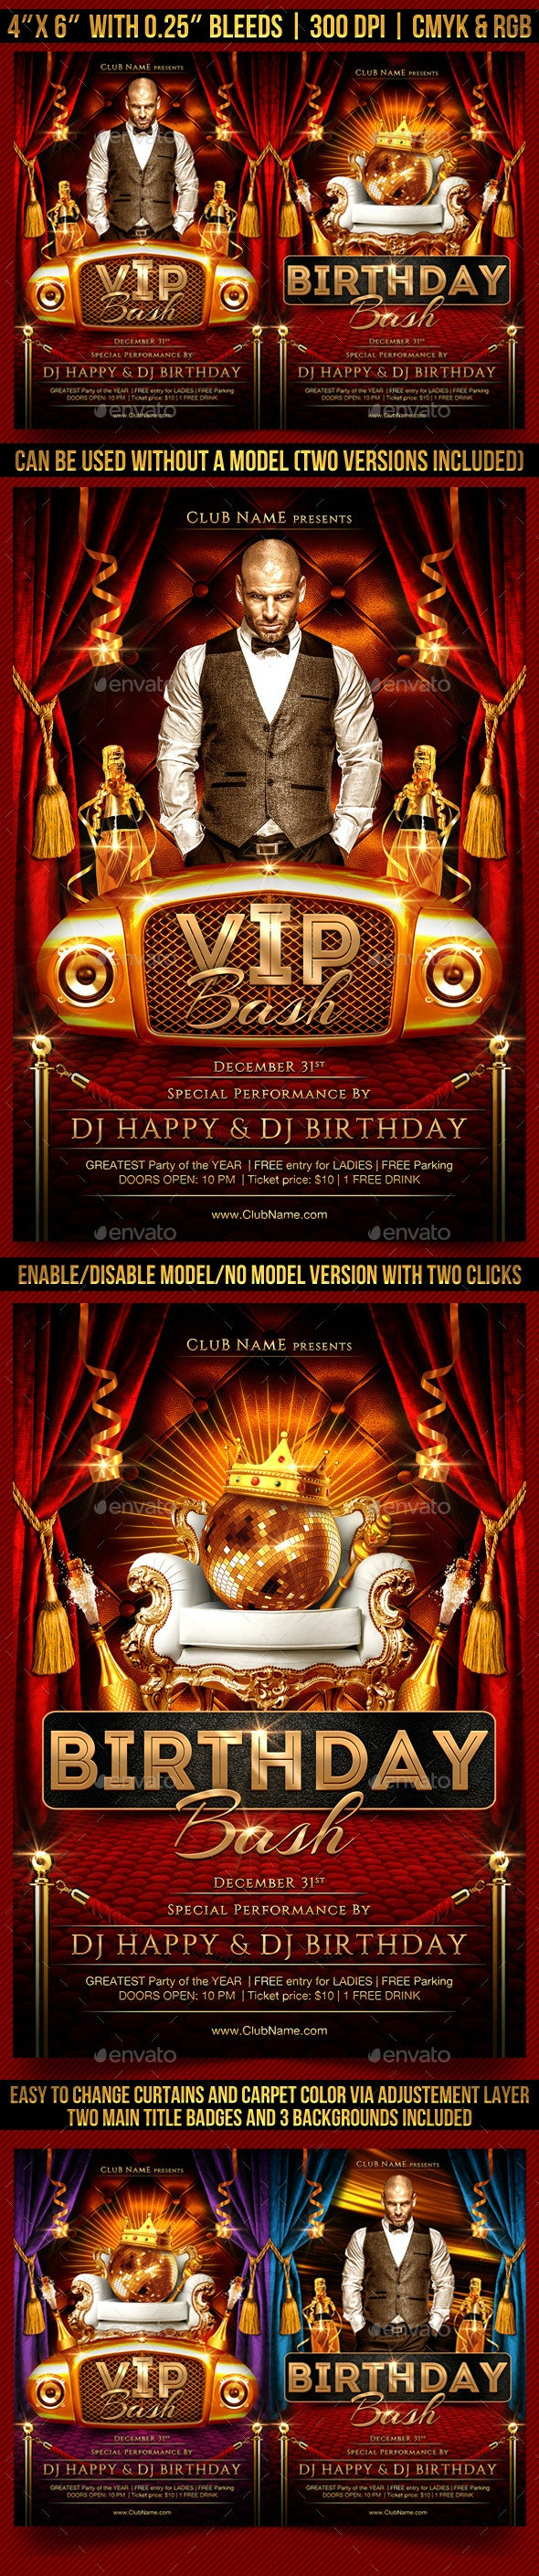 VIP Bash Flyer Template - Clubs & Parties Events